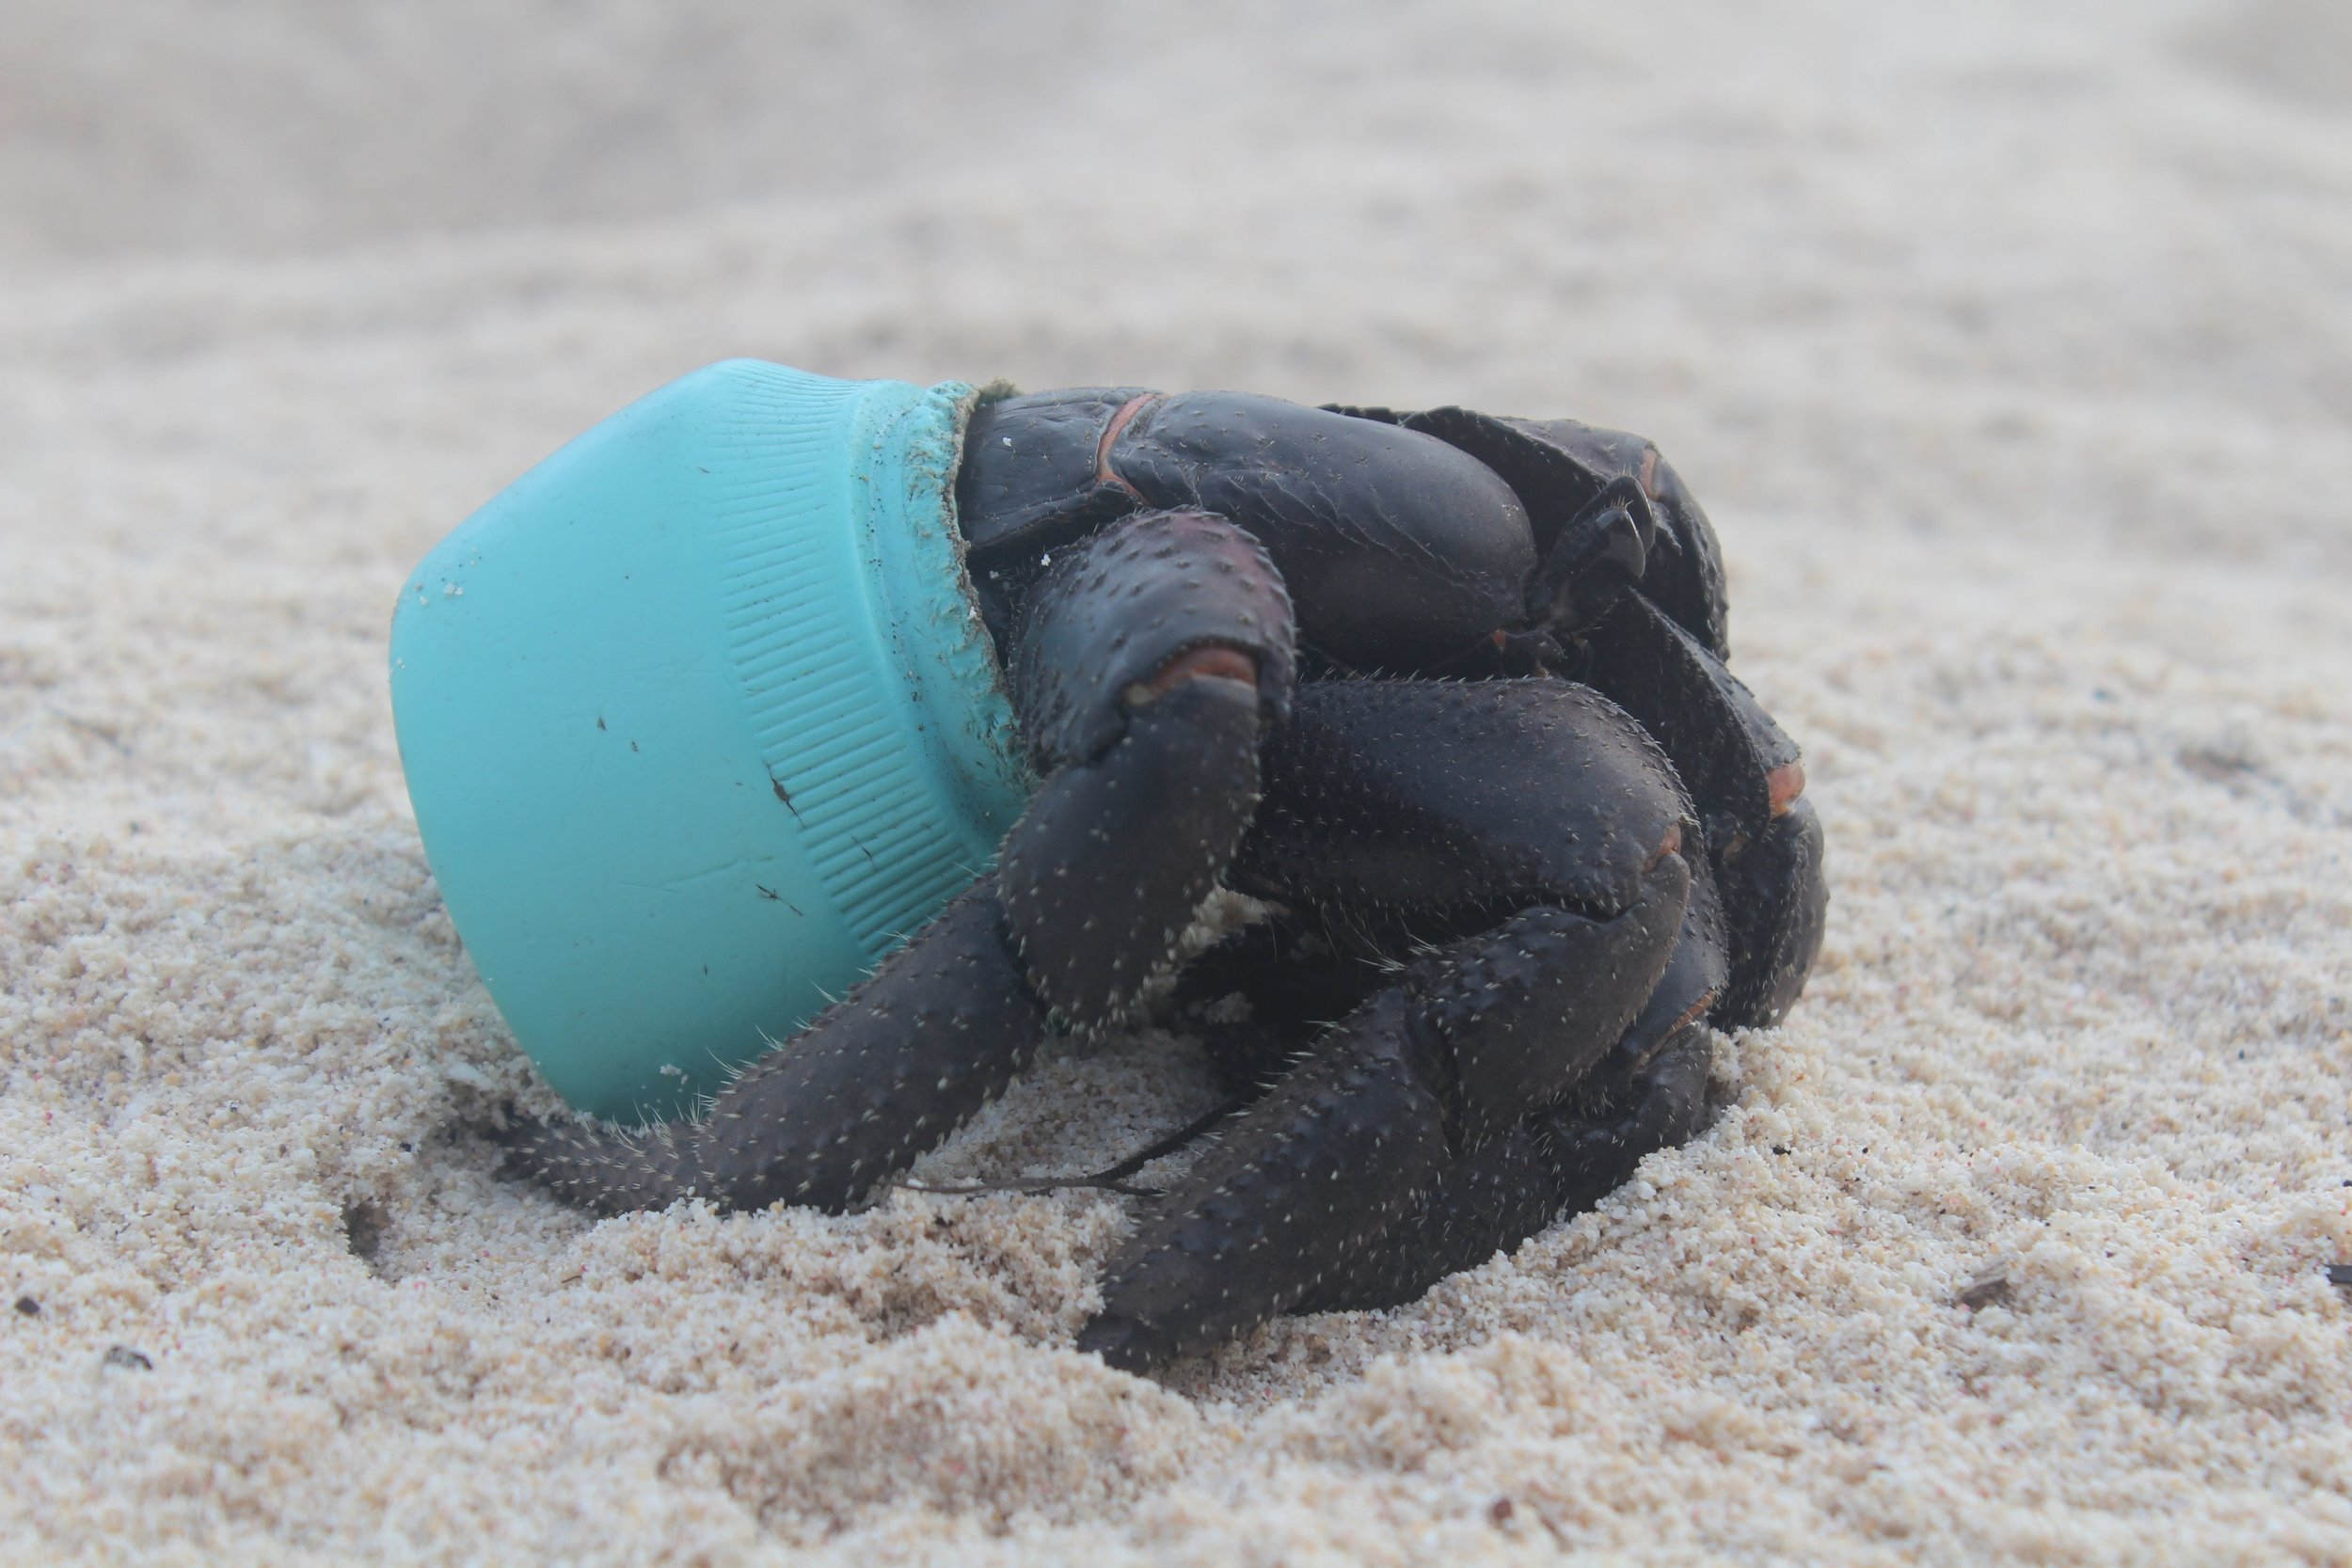 Purple hermit crab using a bottle top for a shell. Photo: Jenn Lavers.